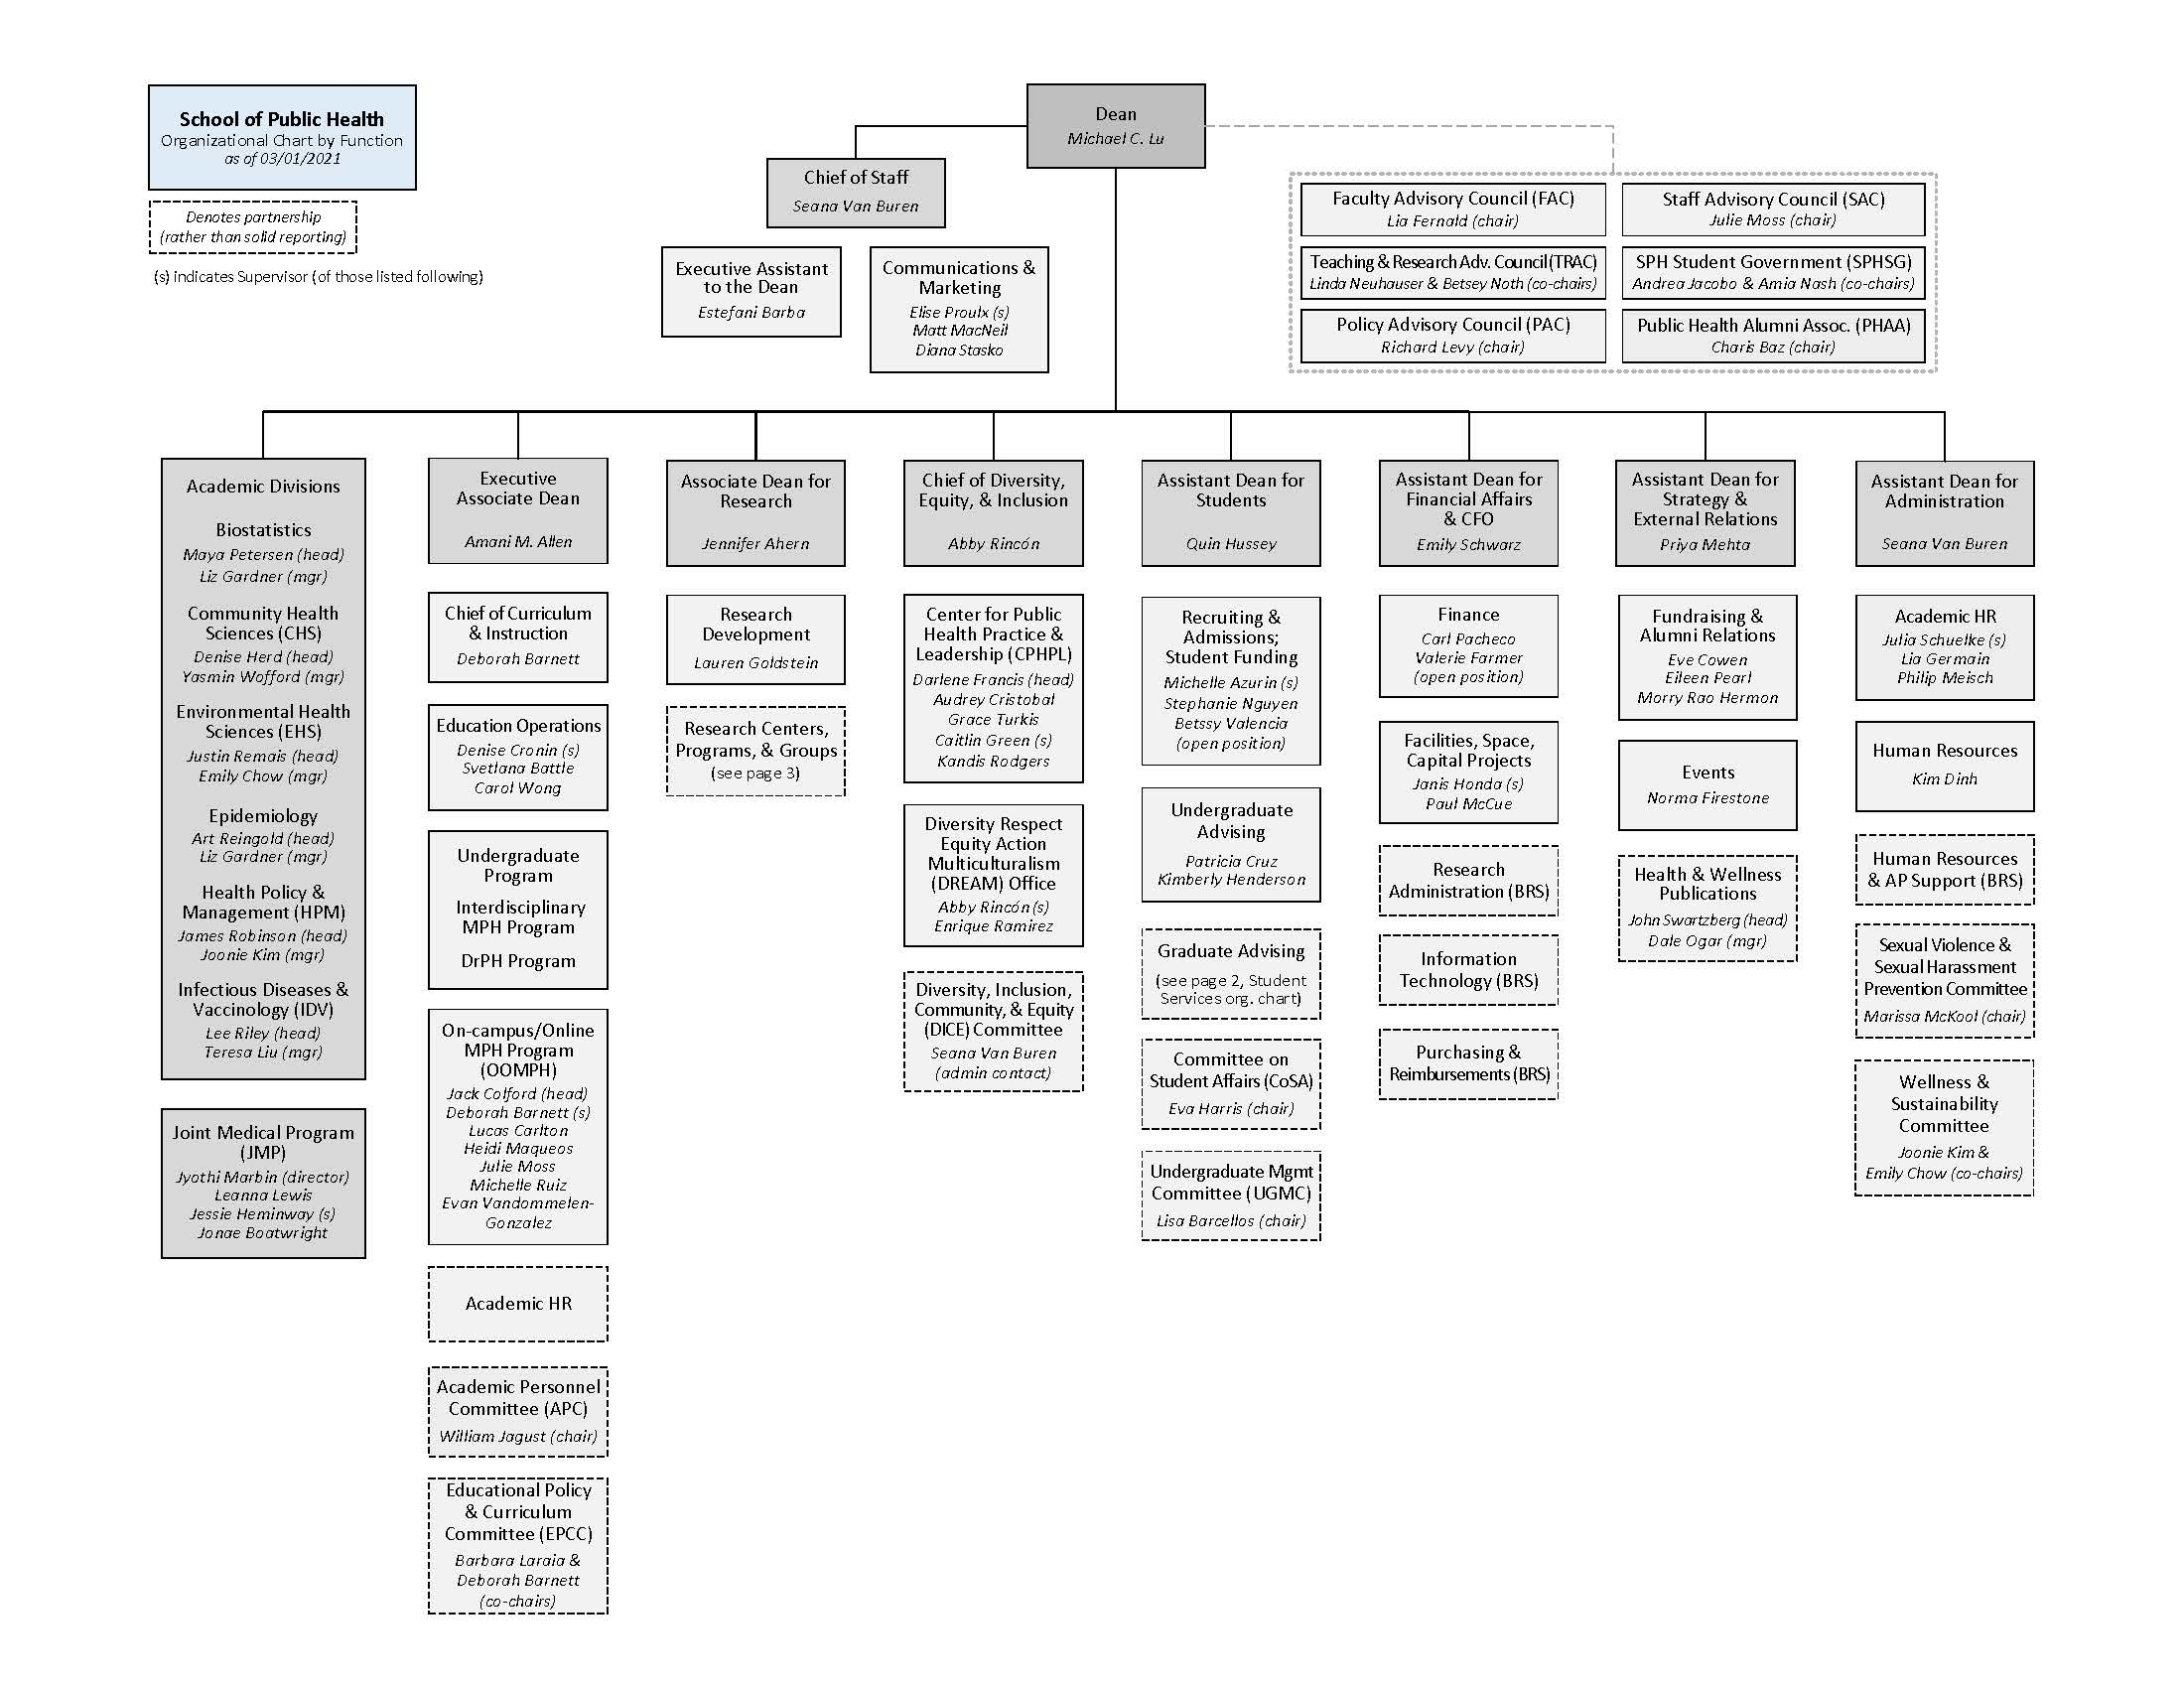 Download the org chart